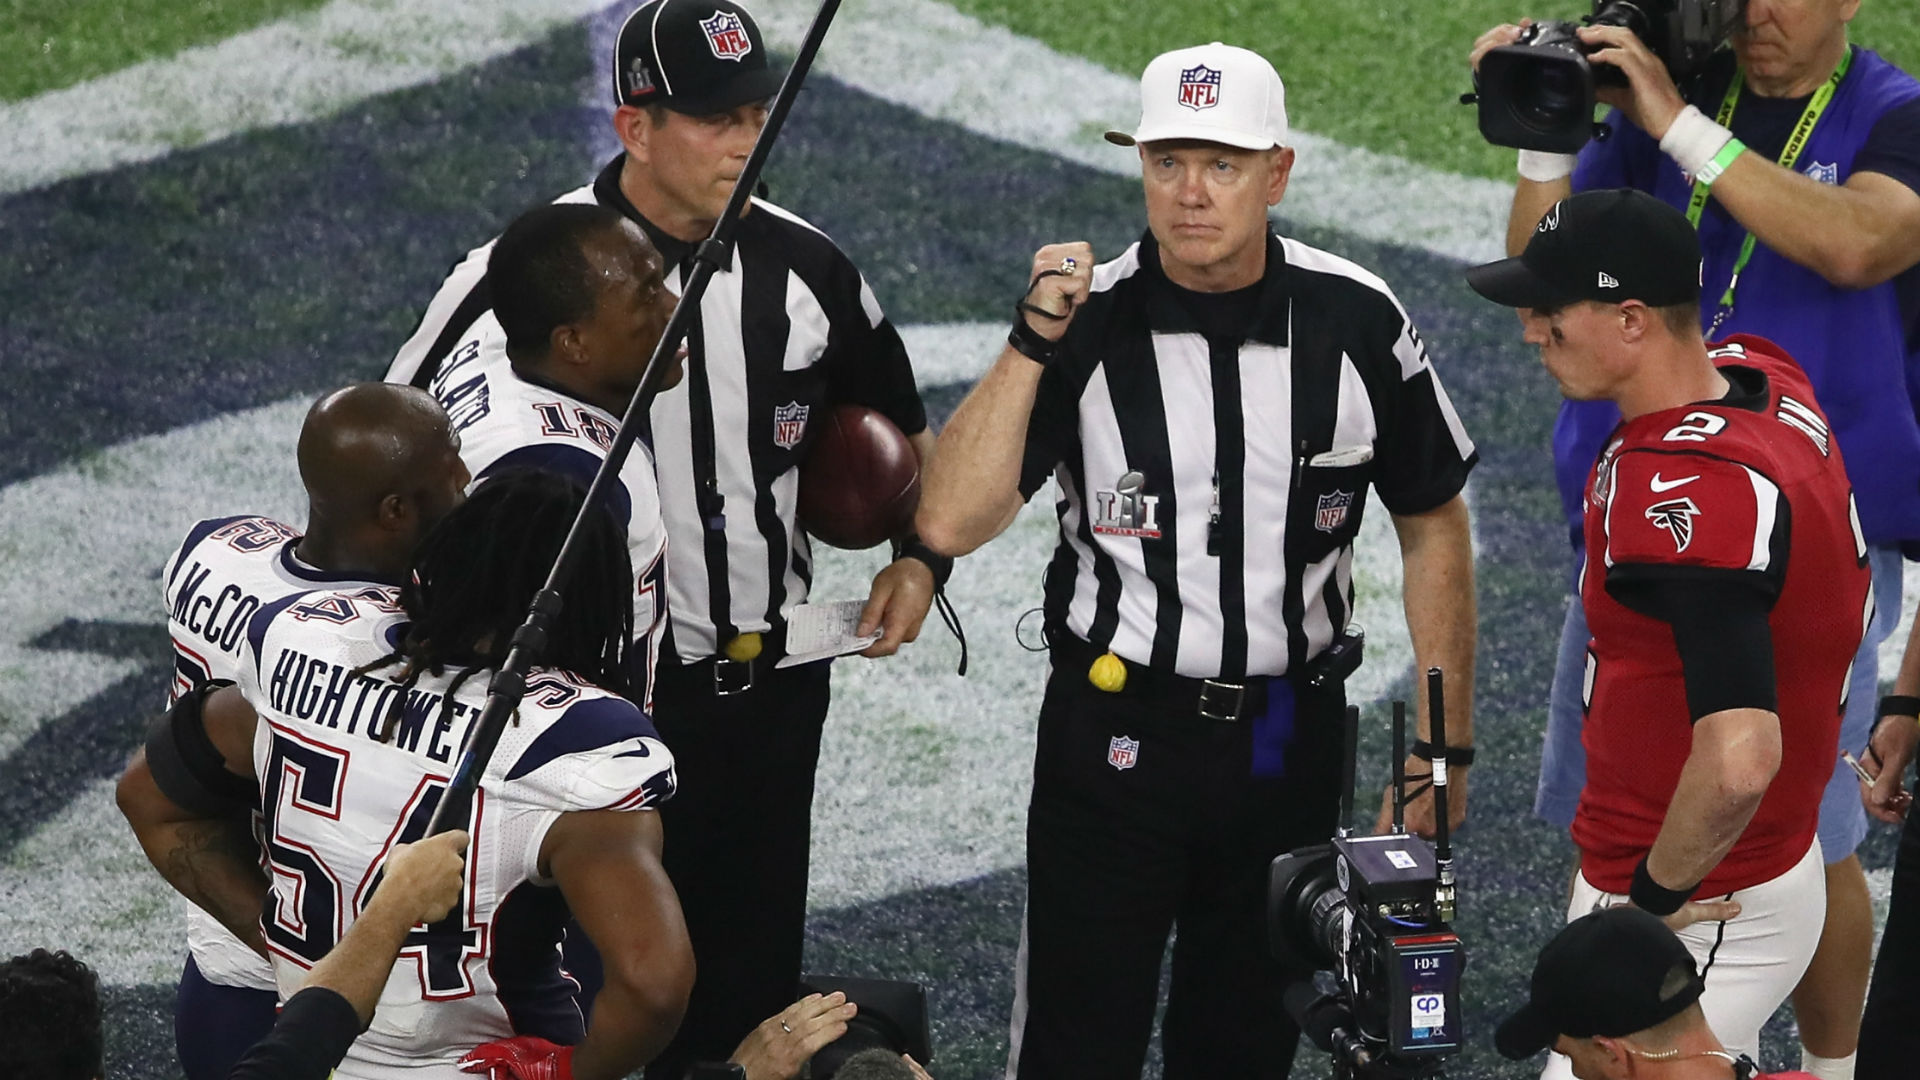 Overtime Shortened as 2017 NFL Rule Changes Hit